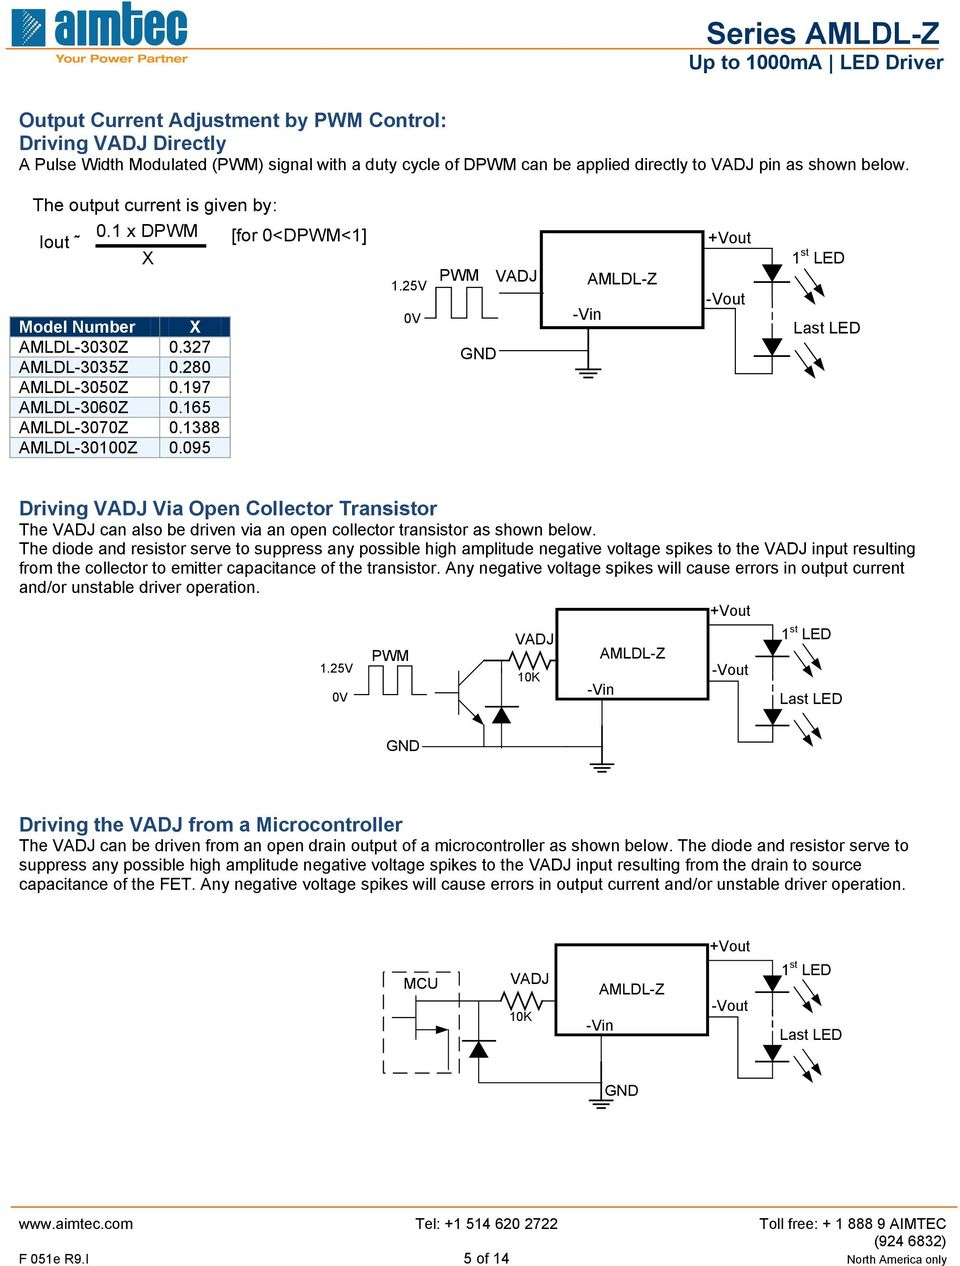 V V PWM st LED Driving Via Open Collector Transistor The can also be driven via an open collector transistor as shown below.